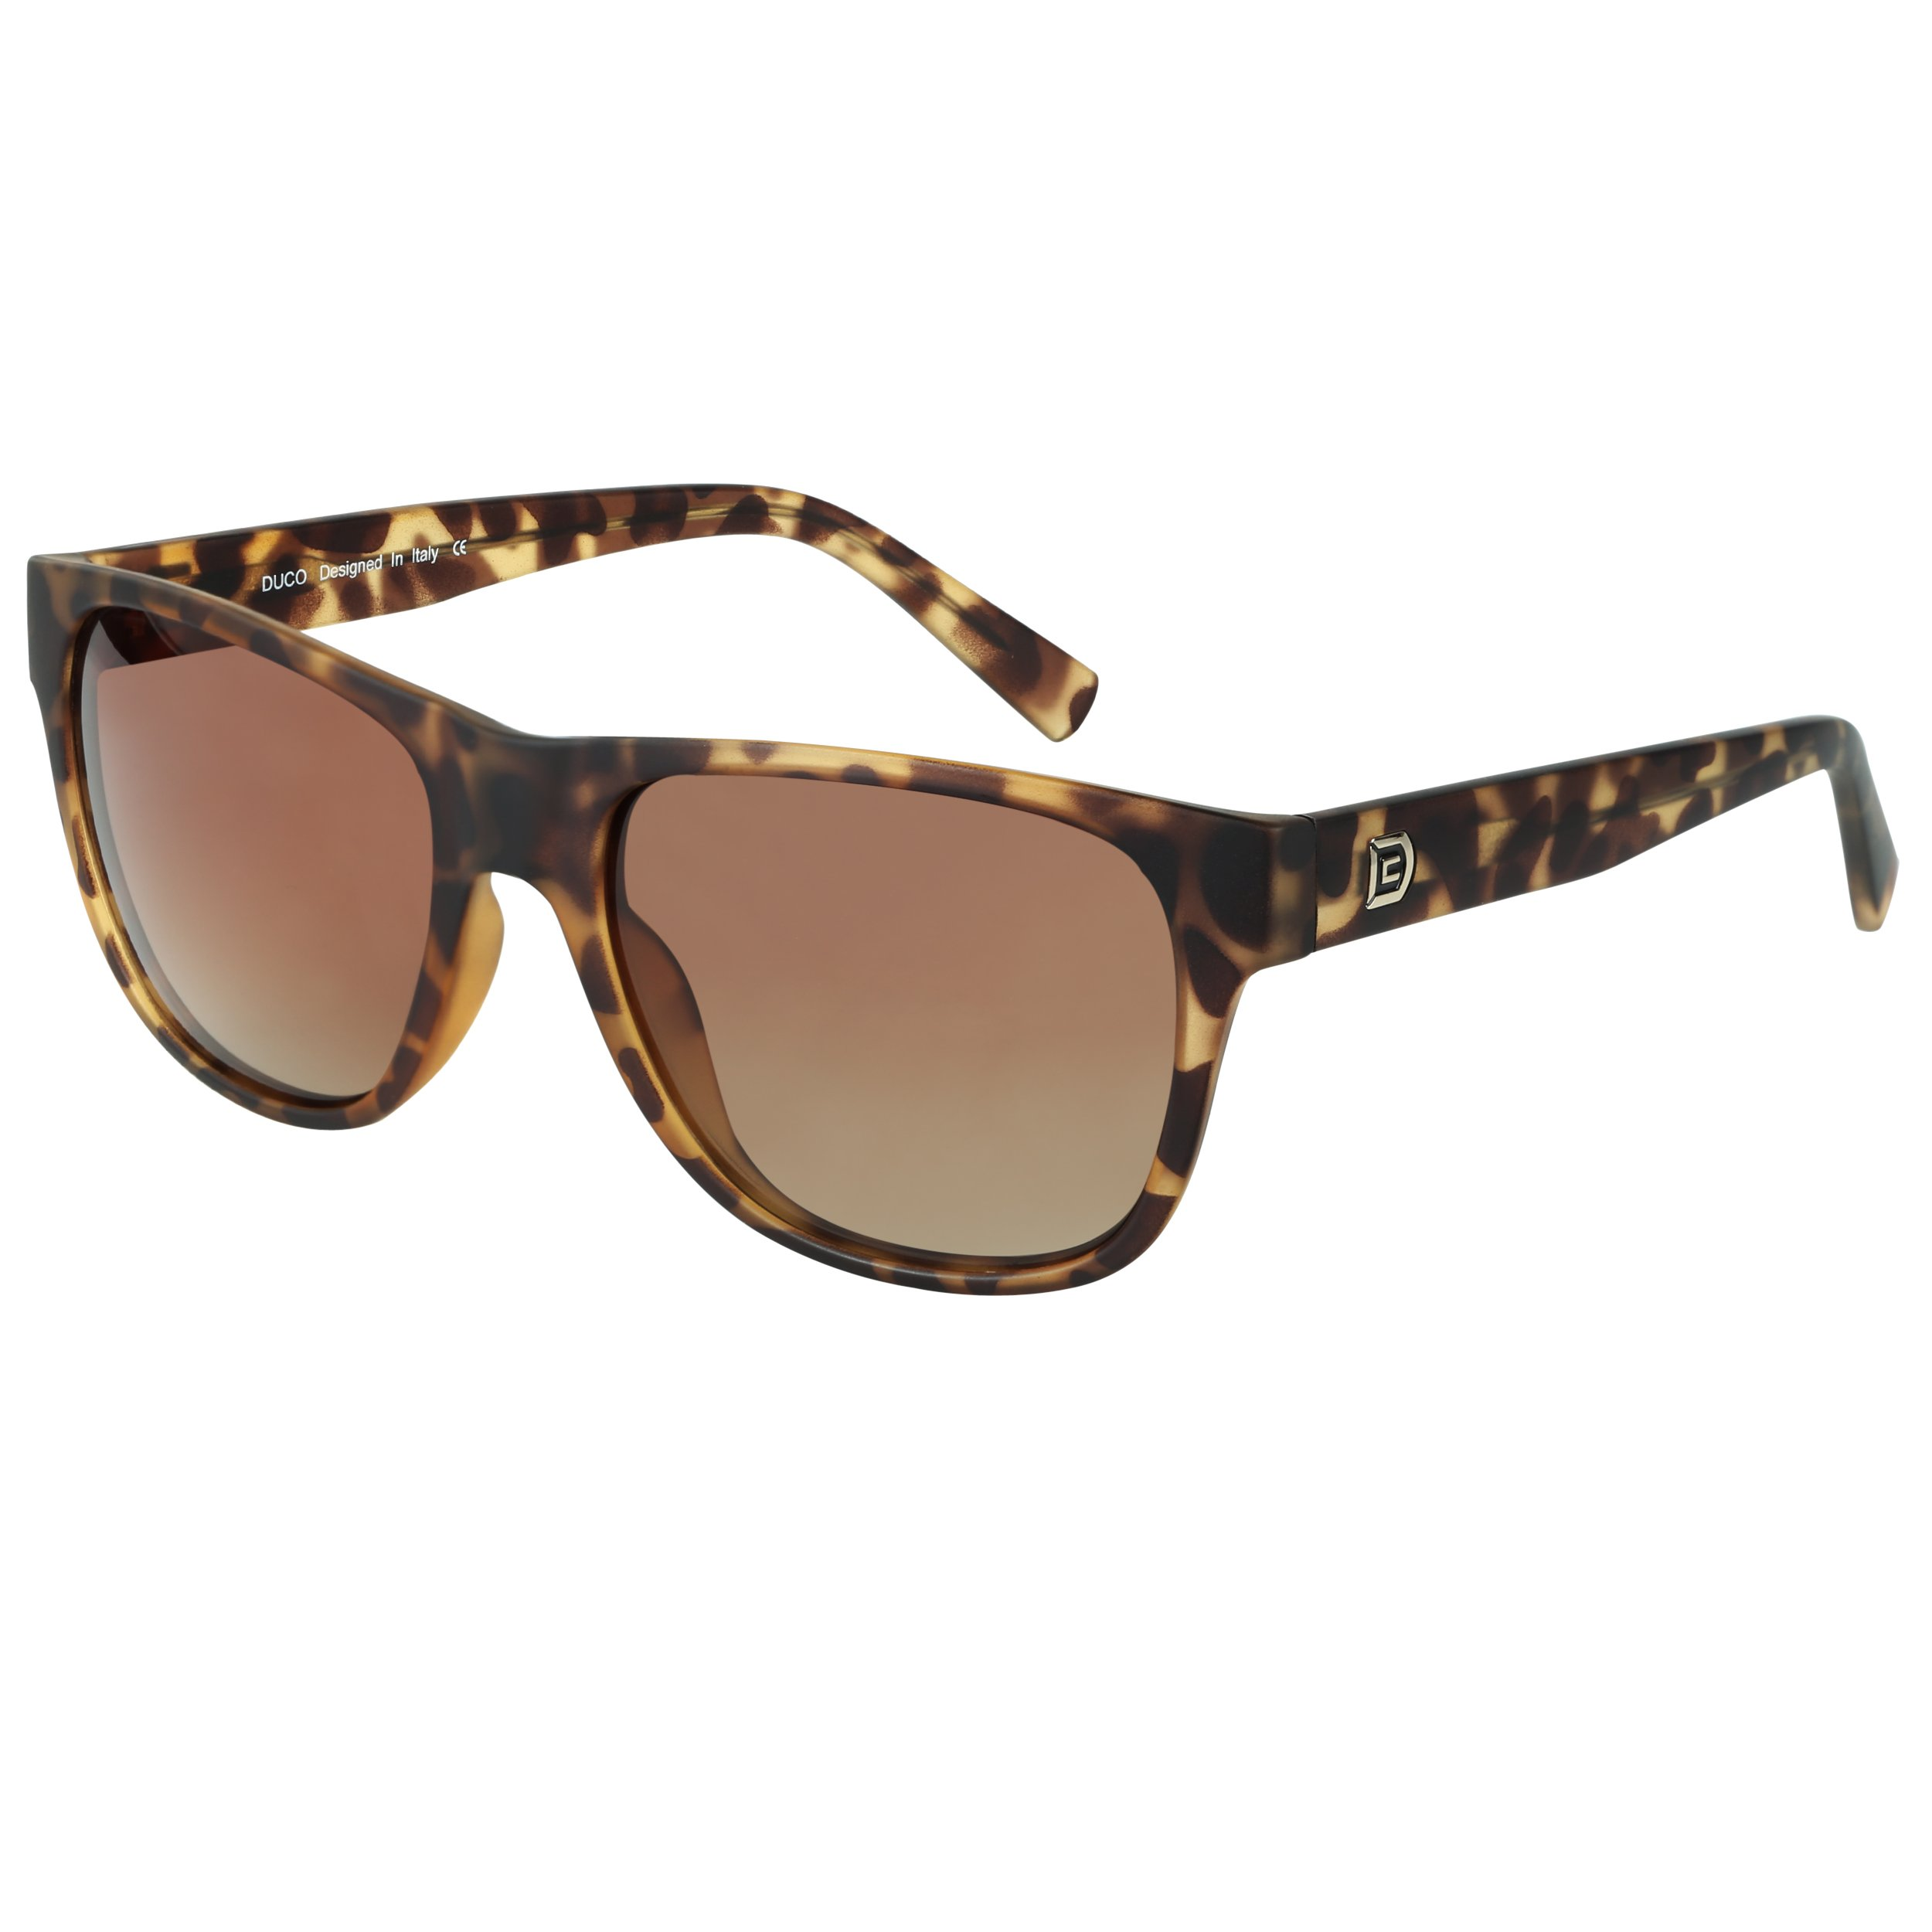 DUCO Classic Polarized Acetate Sunglasses for Men and Women 2145 (Matte Tortoise Frame Gradient Brown Lens) by DUCO